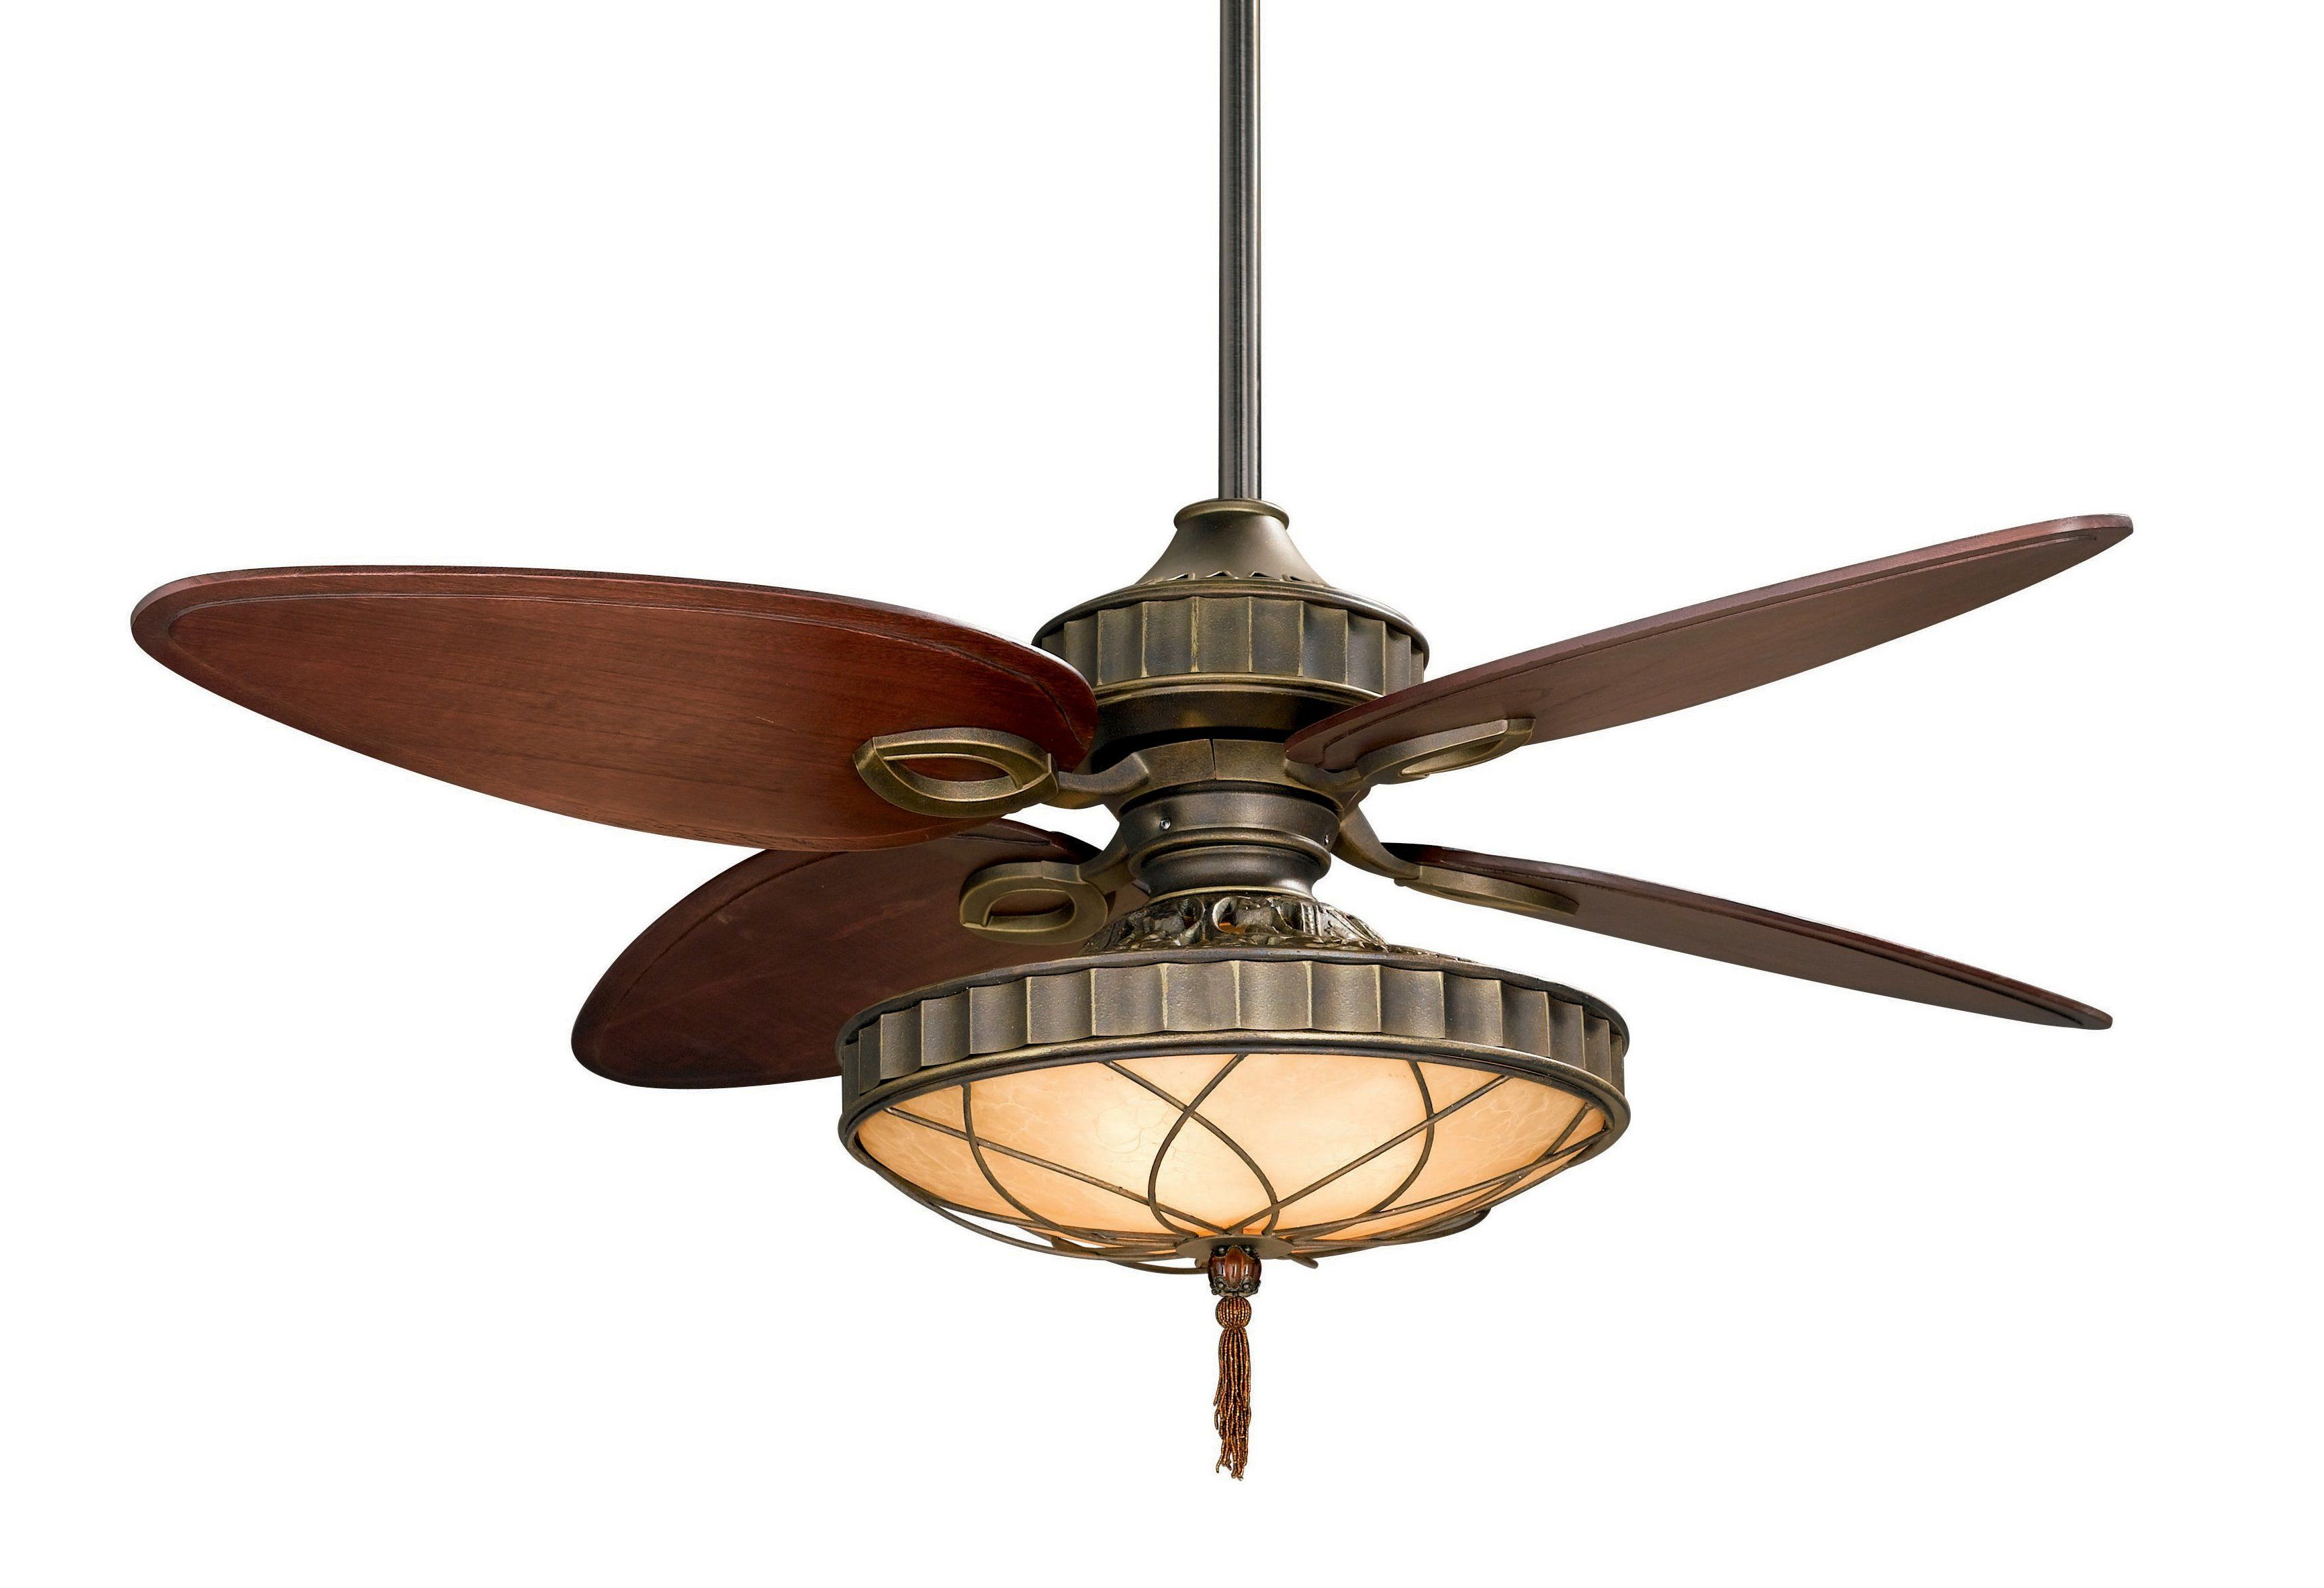 mainstays scenic fan usha kit inch maple retro beckwith home light ceiling nickel chic antique decorimation bronze white casa fontana brushed brass with lighting